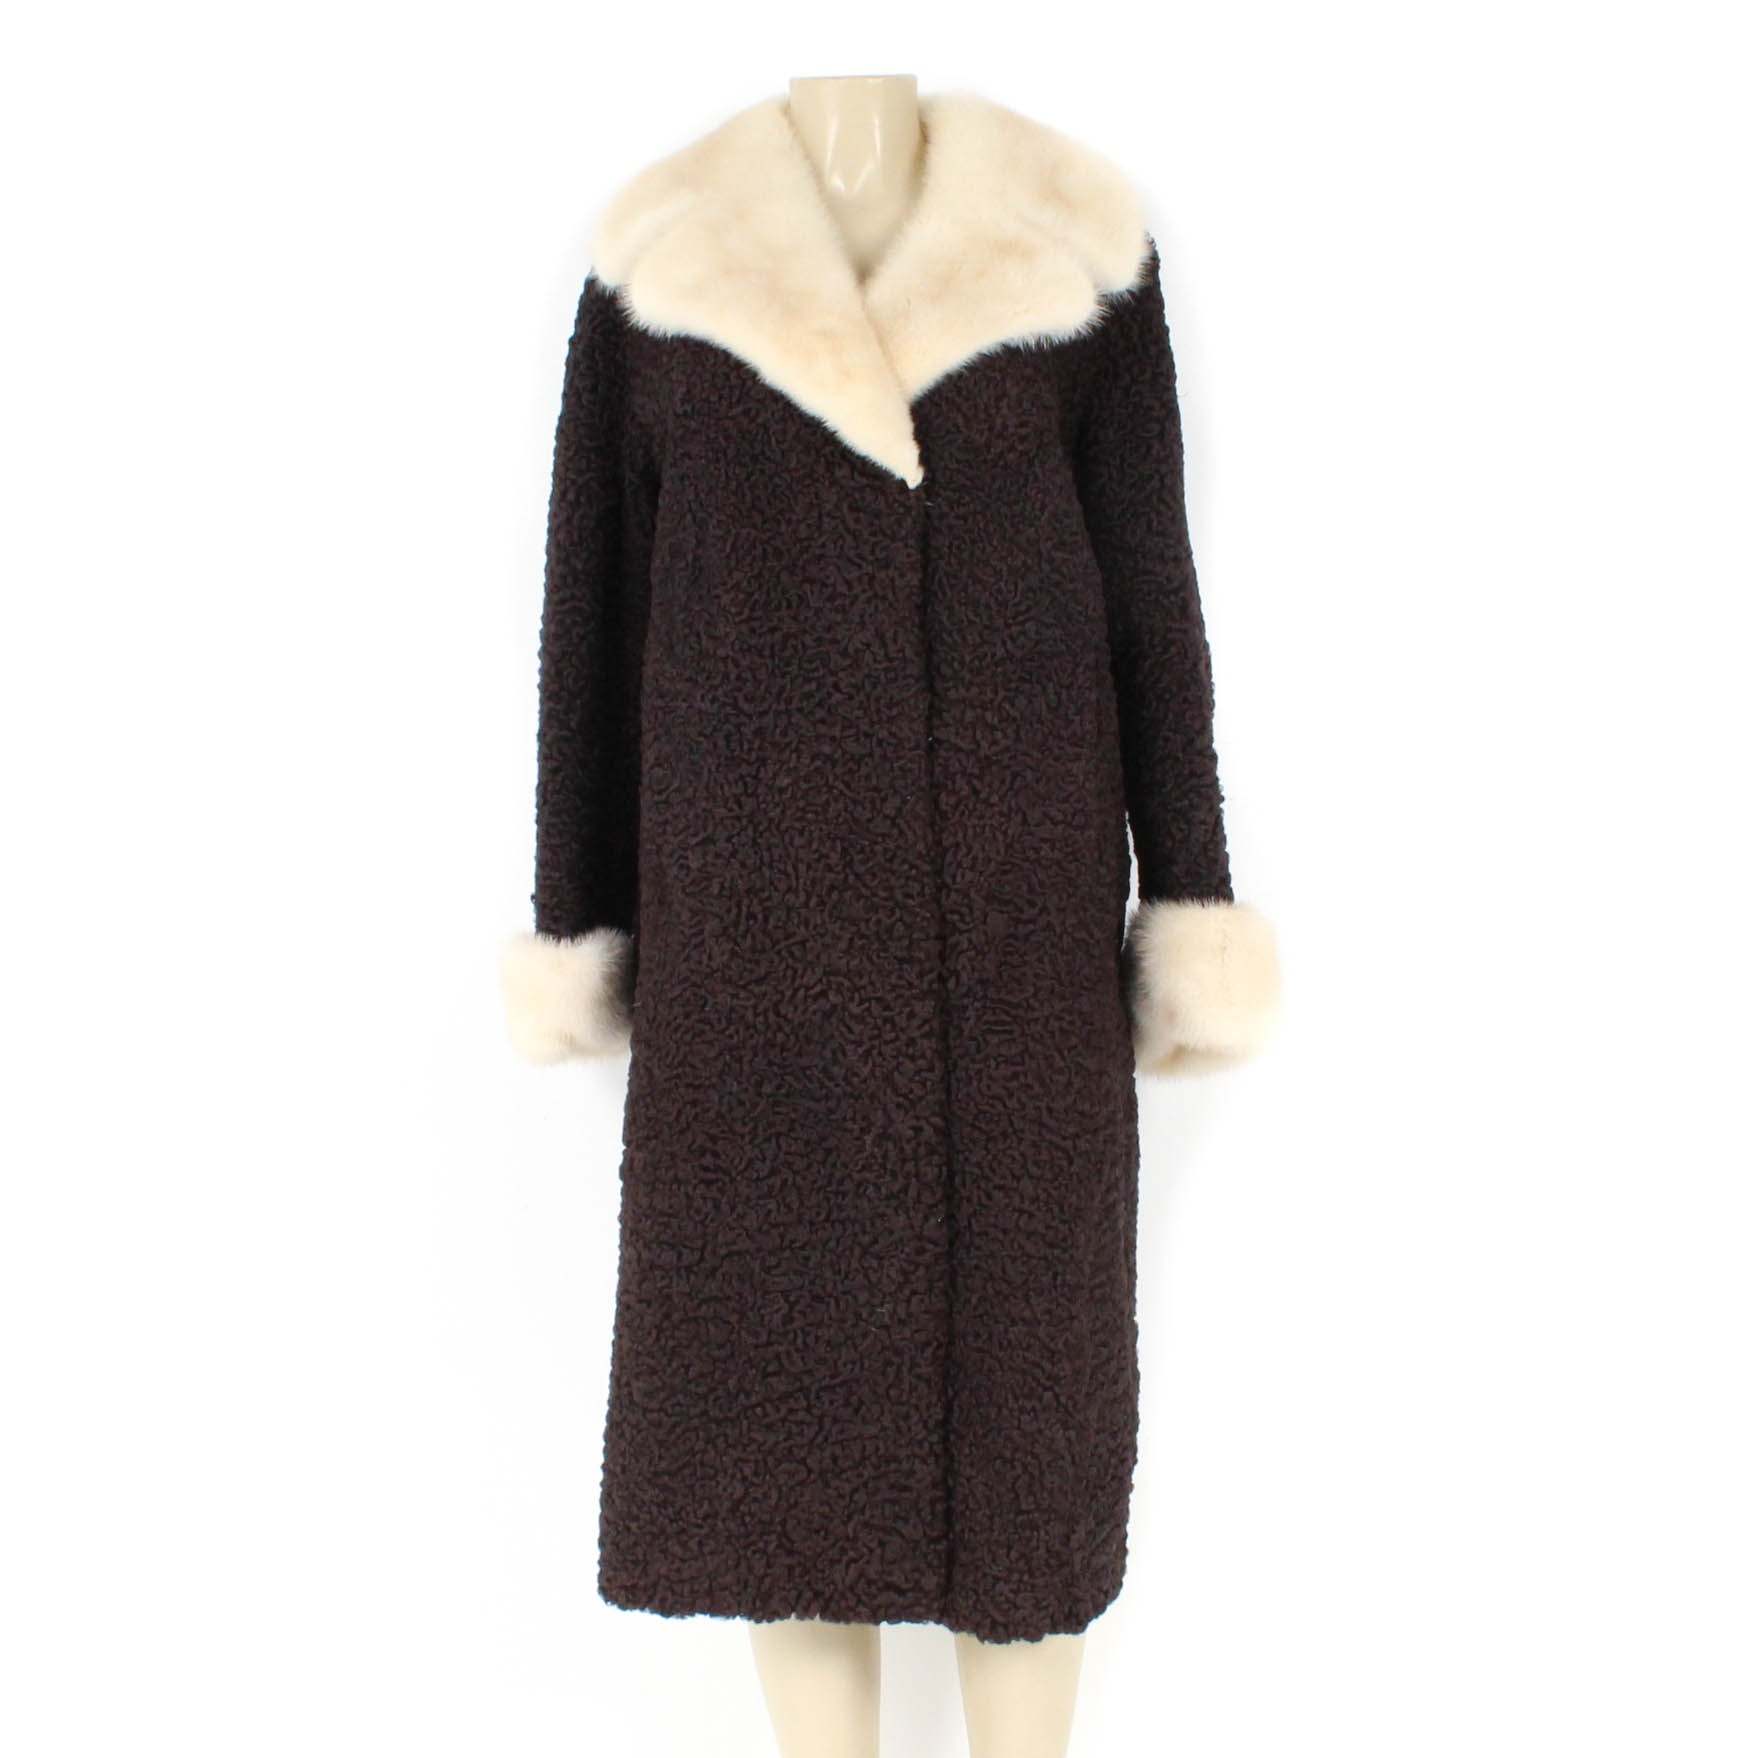 Vintage Woodley's Persian Lamb Coat with Platinum Mink Fur Trim